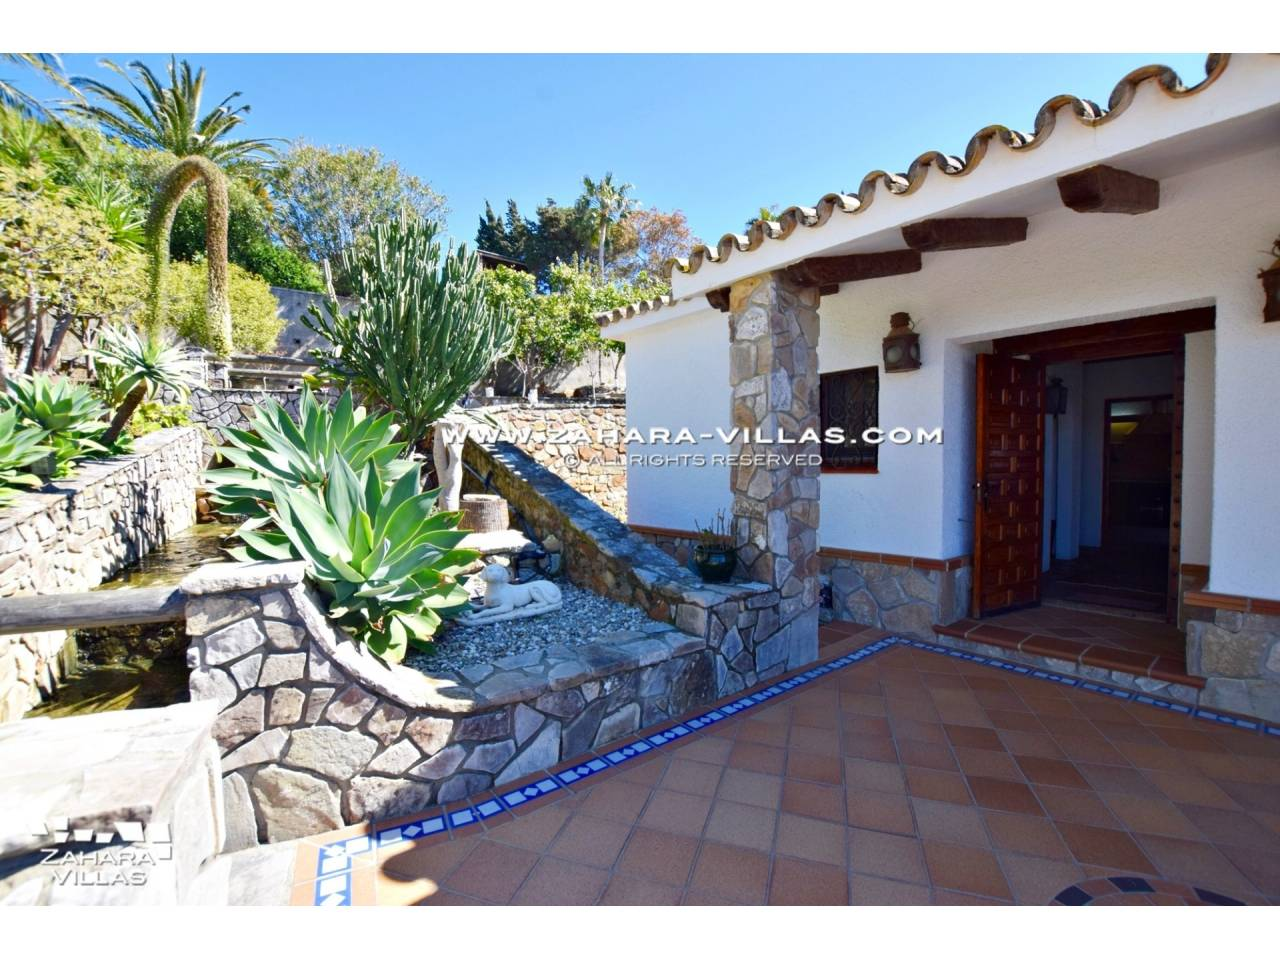 Imagen 19 de Wonderful villa for sale in the upper area of the Atlanterra mountain